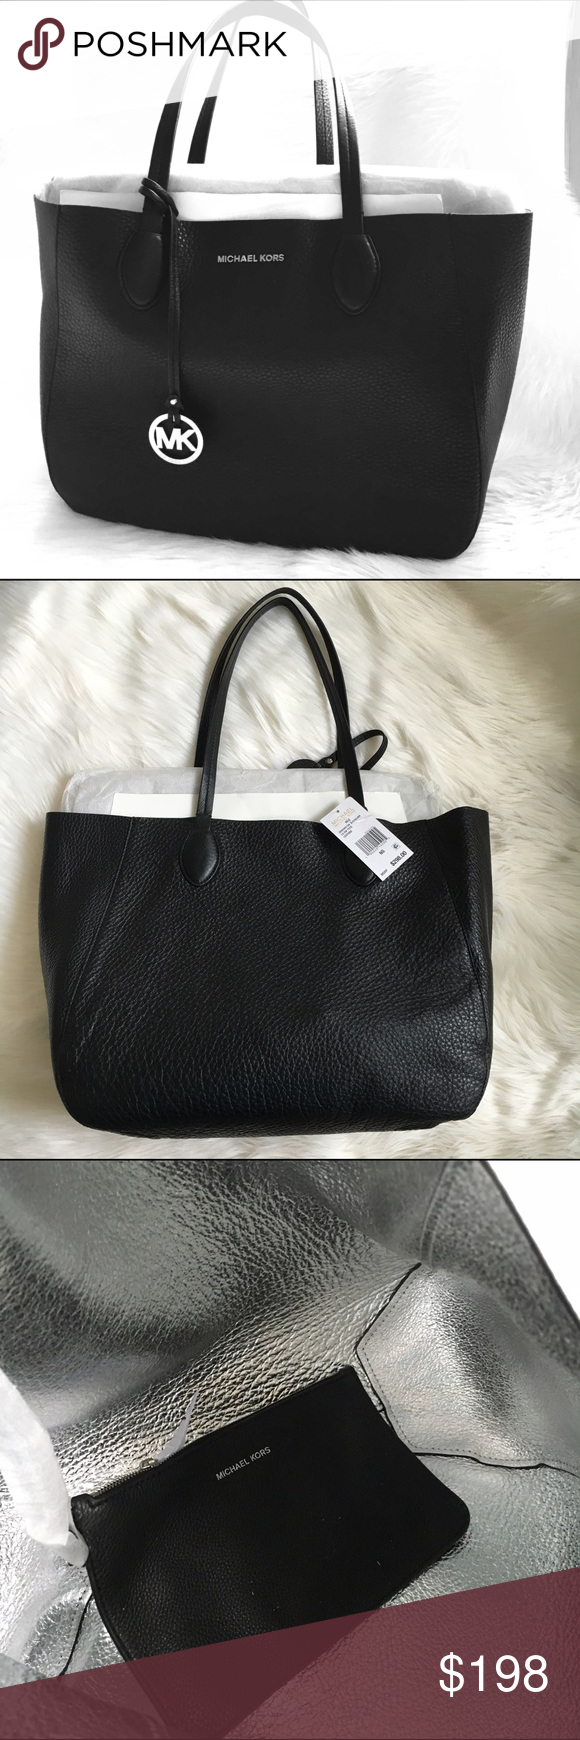 MICHAEL KORS tote Black leather tote with Silvertone hardware. New! Authentic 🚫trades🚫 Michael Kors Bags Totes